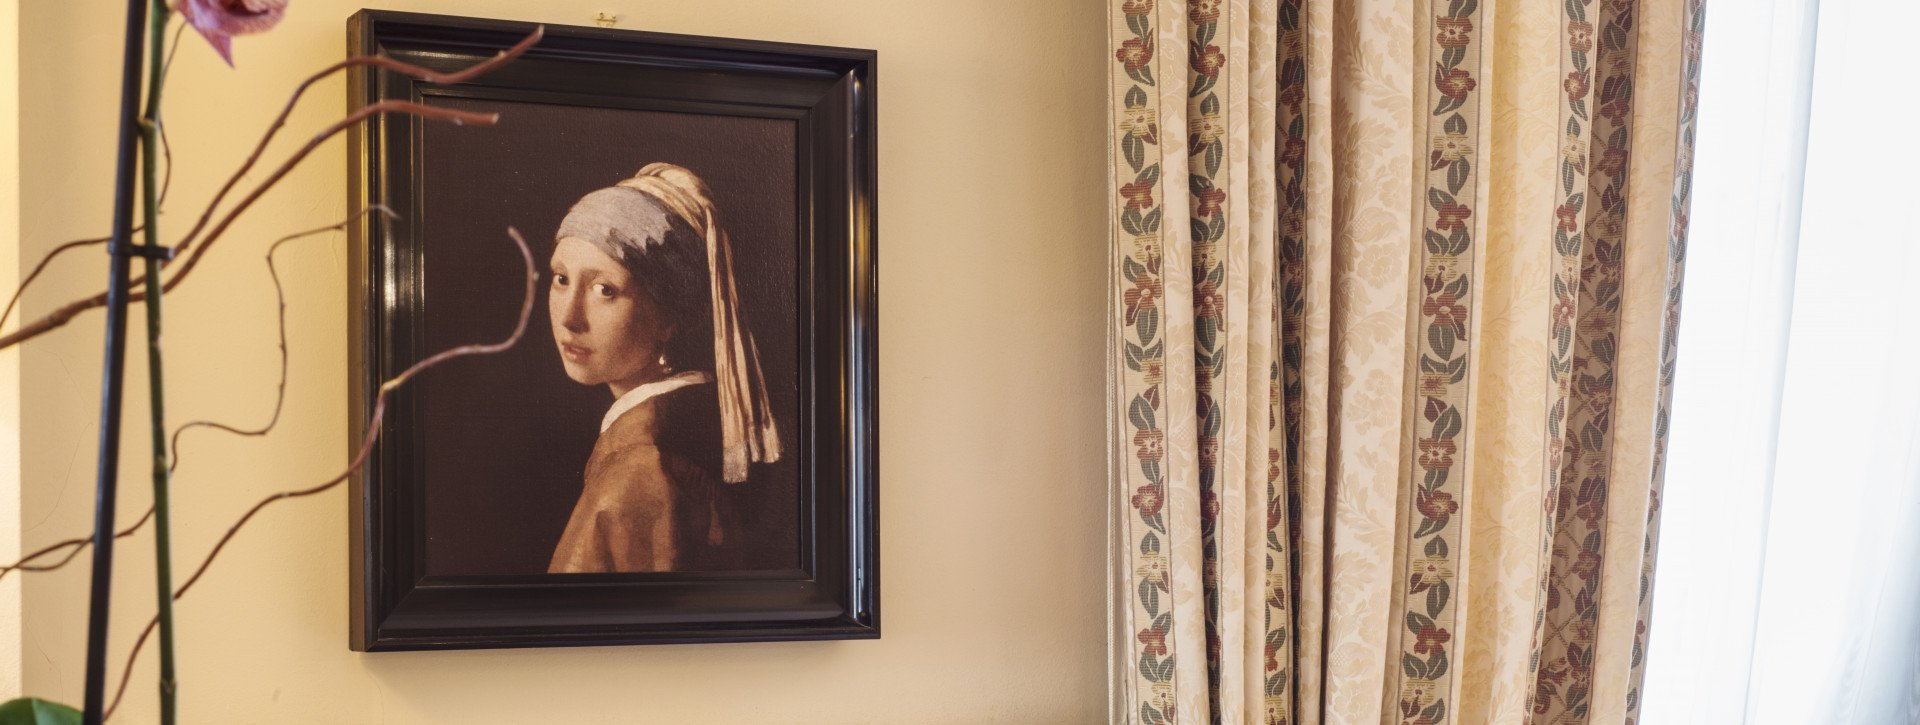 Ragazza col turbante, di Jan Vermeer